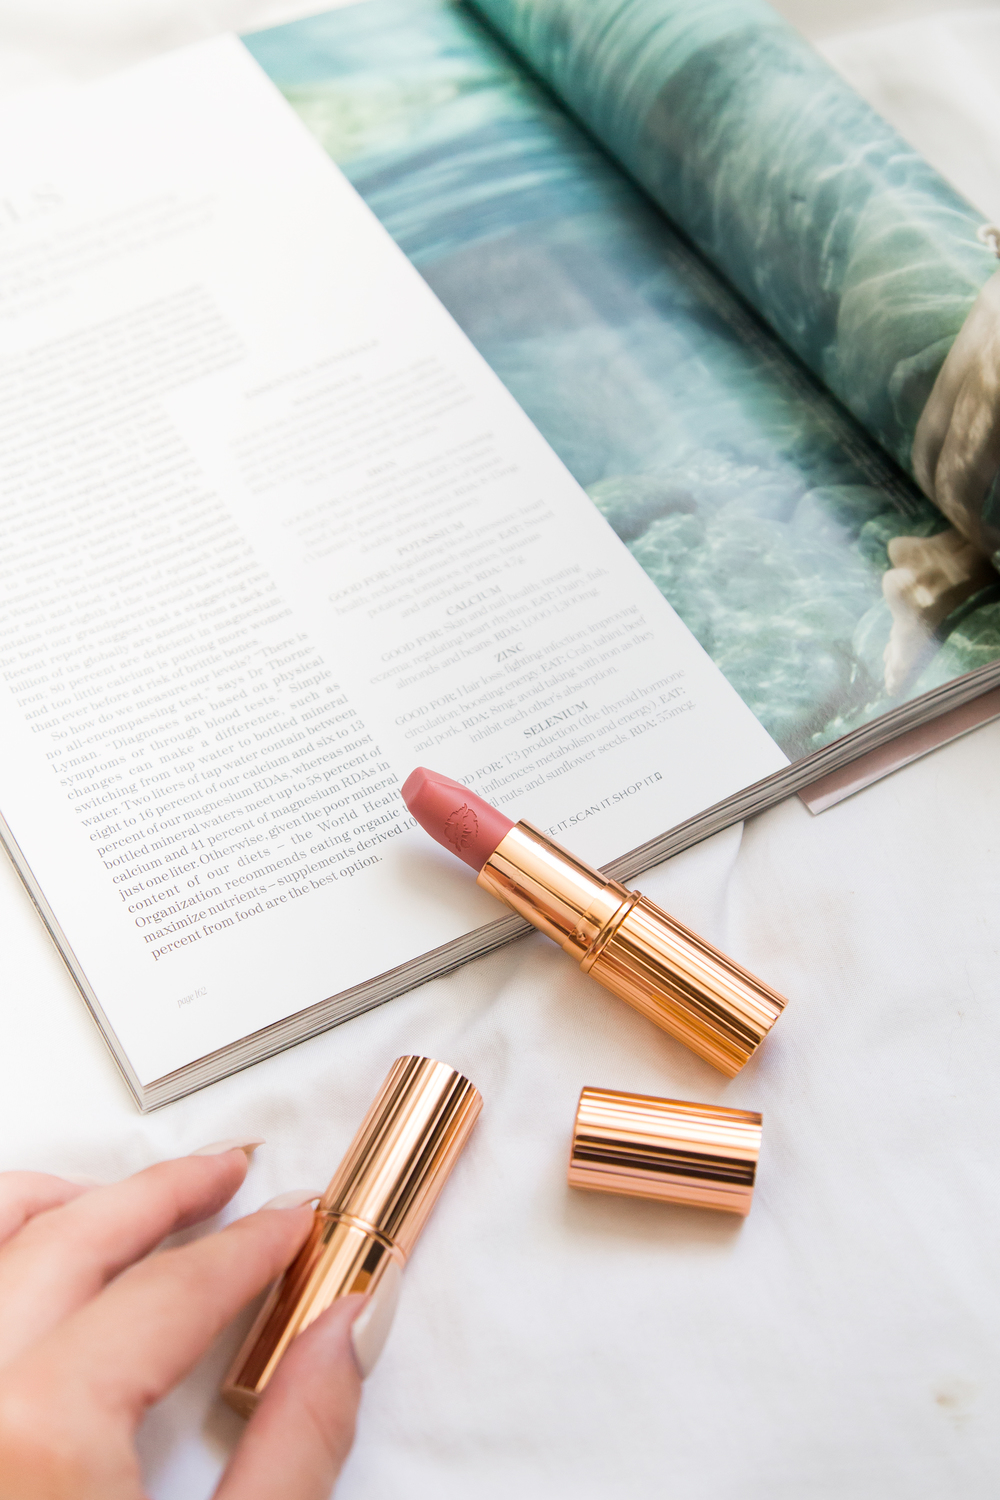 Charlotte Tilbury Kidman's Kiss review